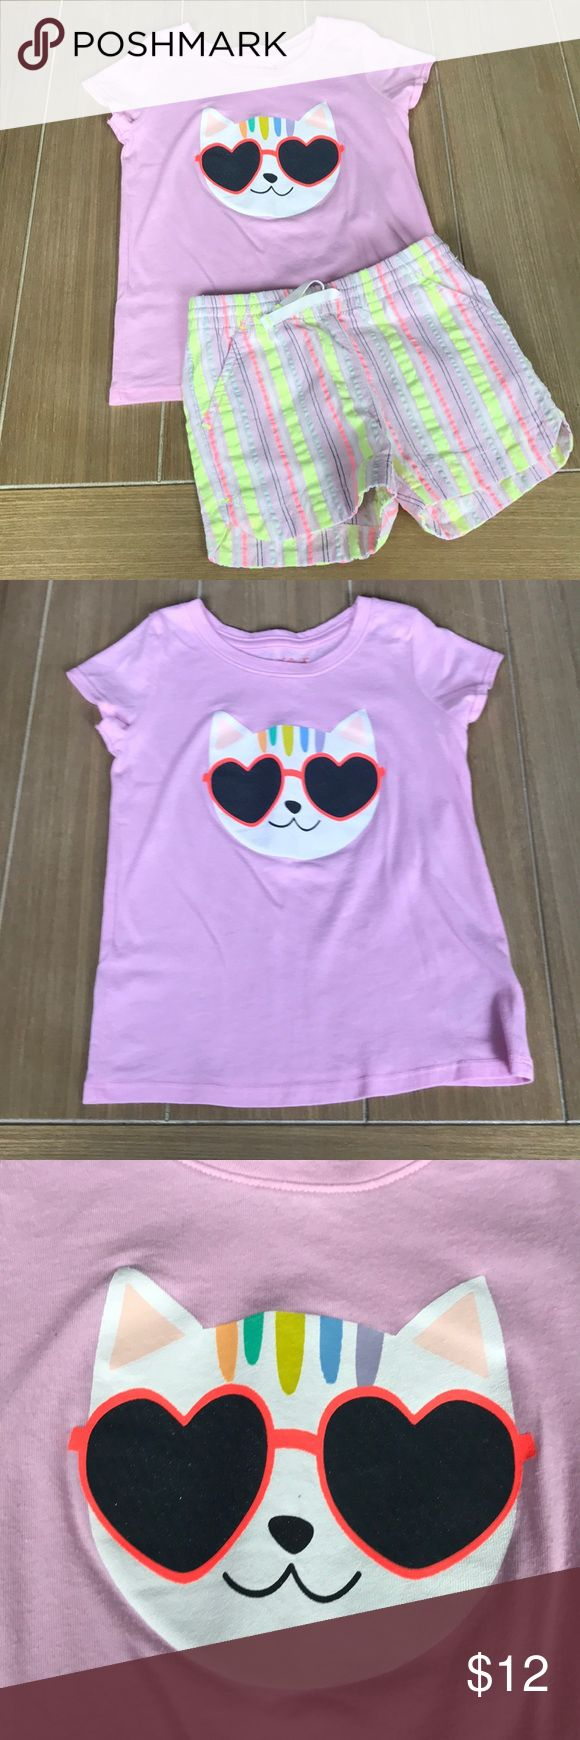 Cat & Jack Cool Cat Matching Set Matching set includes light purple tee shirt with cat print and striped shorts. Both worn and washed with tide. Both slightly faded from wash but lots of wear left. Shorts have three pockets and drawstring. Bundle and save! cat & jack Matching Sets